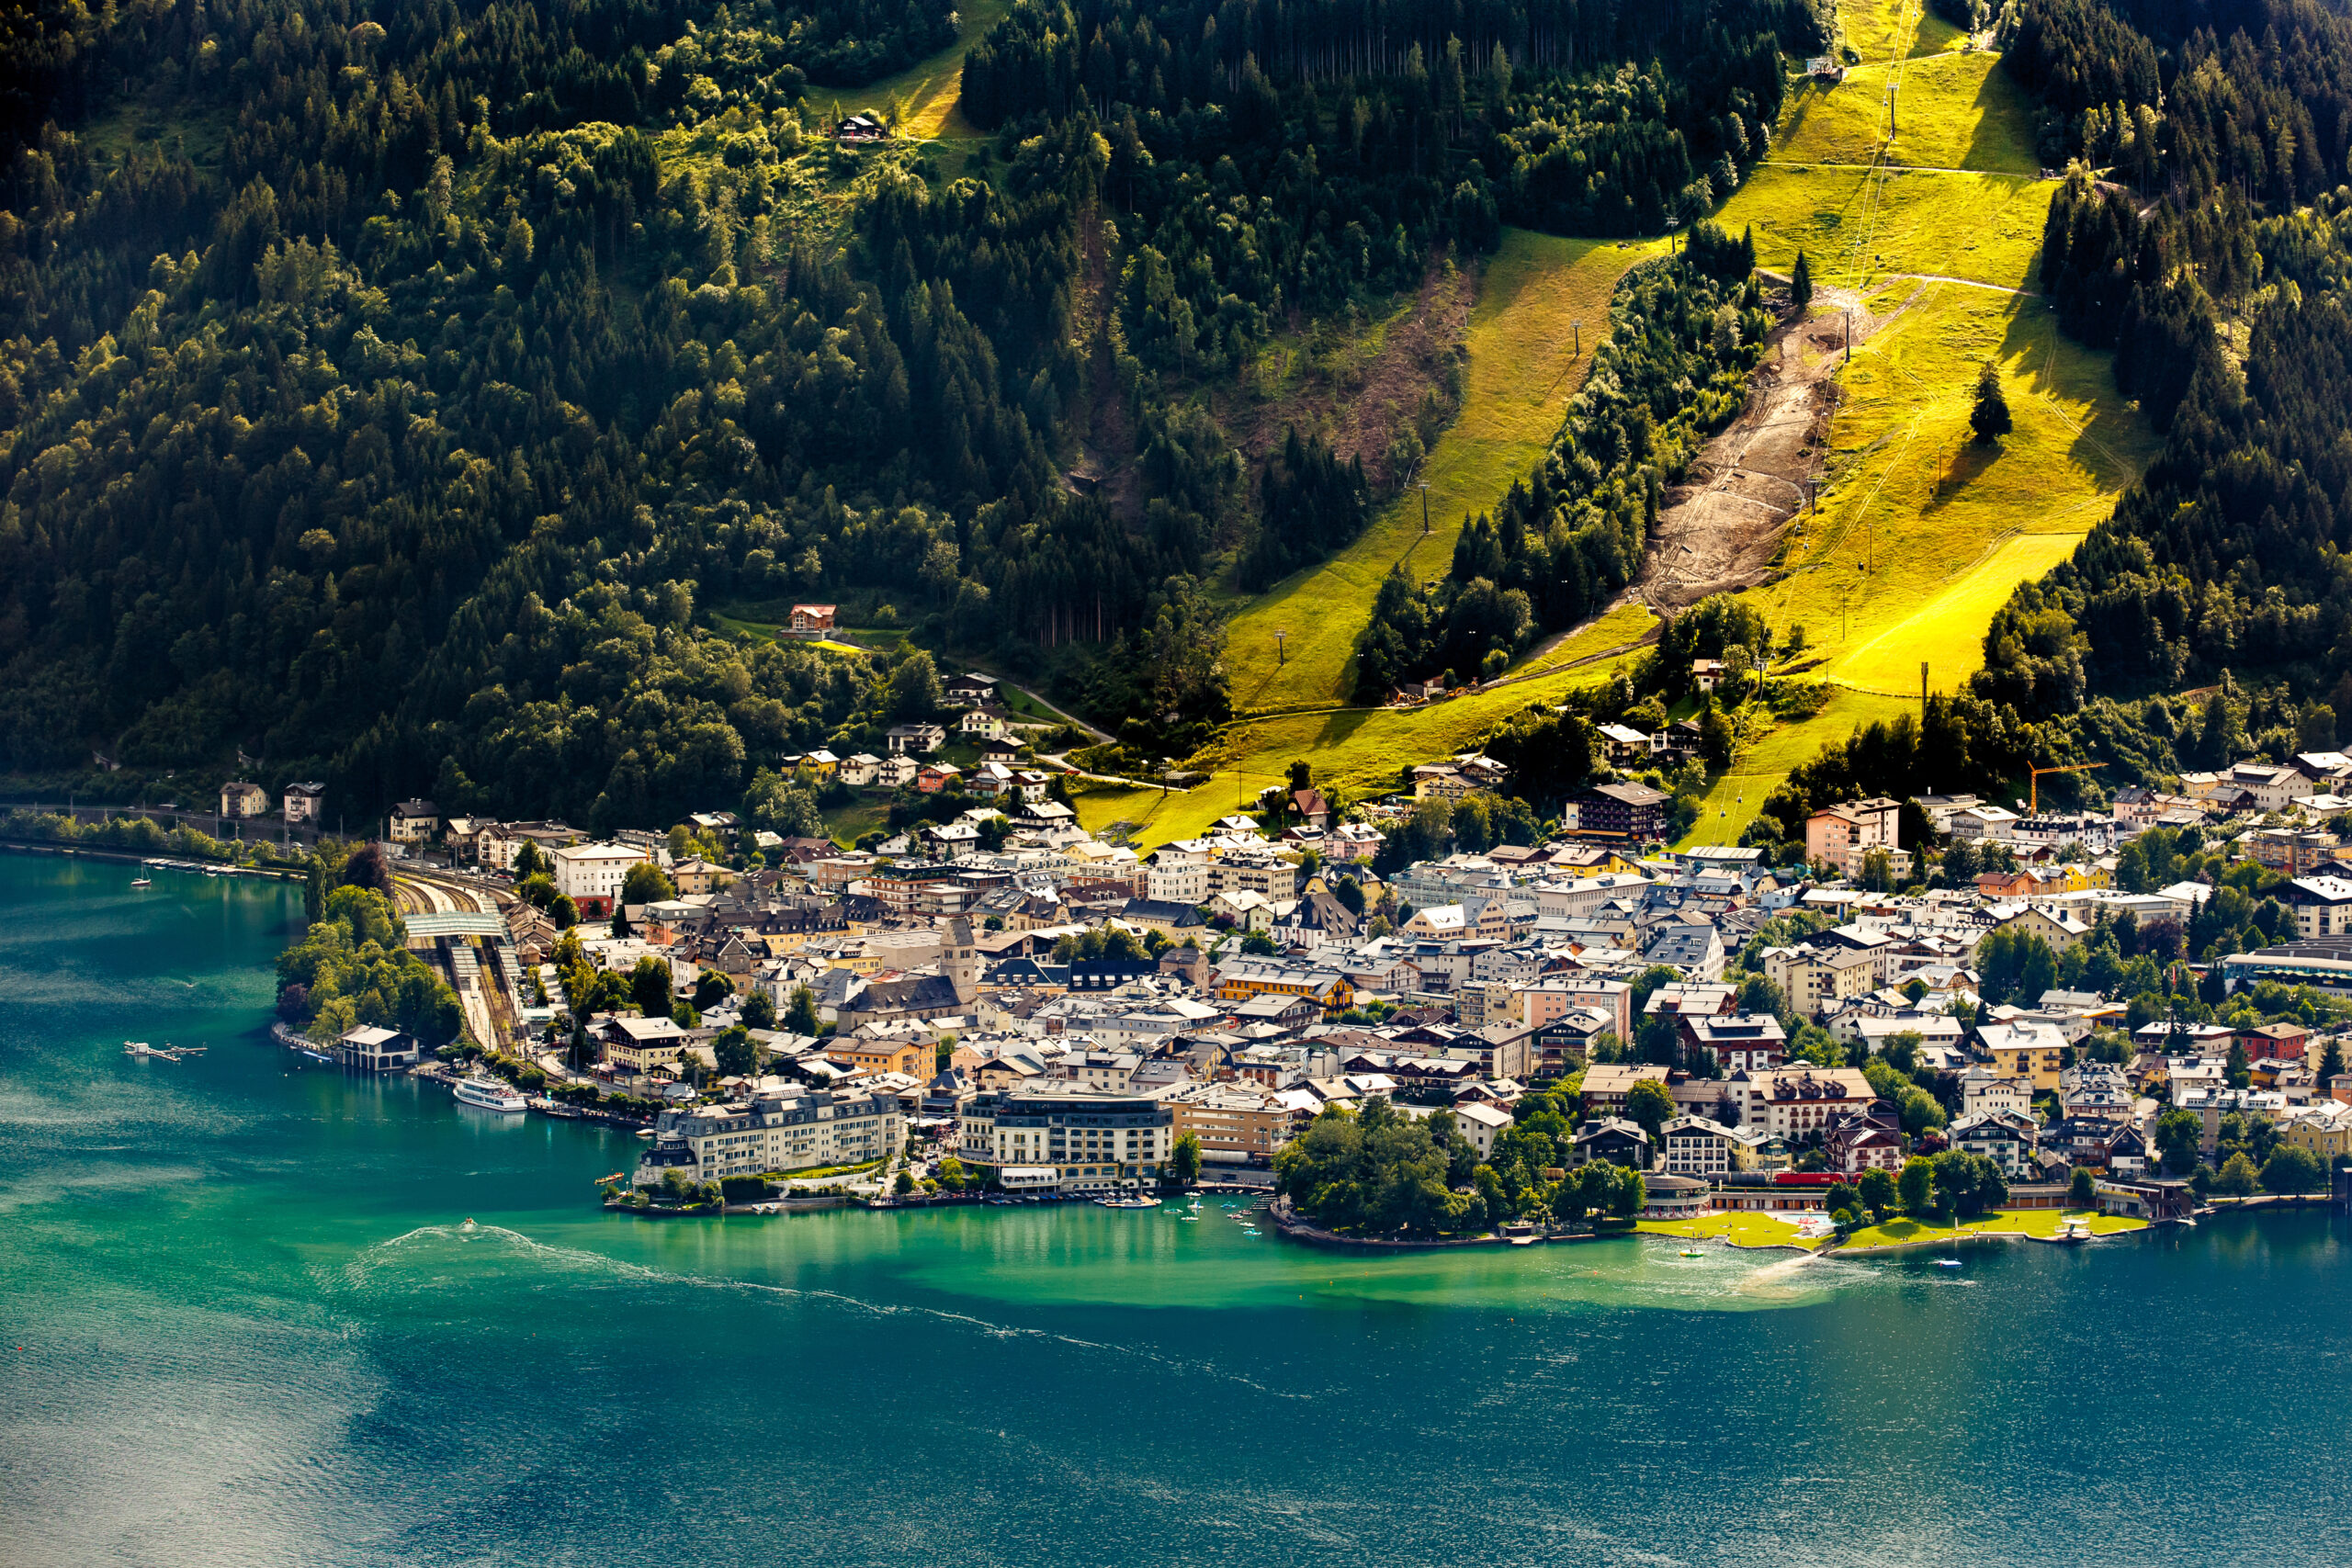 Photo featuring an amazing aerial view of Zell am See. Blue-green water is in the foreground. There are many waterfront resorts seen with just as many homes and buildings behind them. Light green grass is shown on large ski runs going up the mountain side. Dark green trees are on either side.